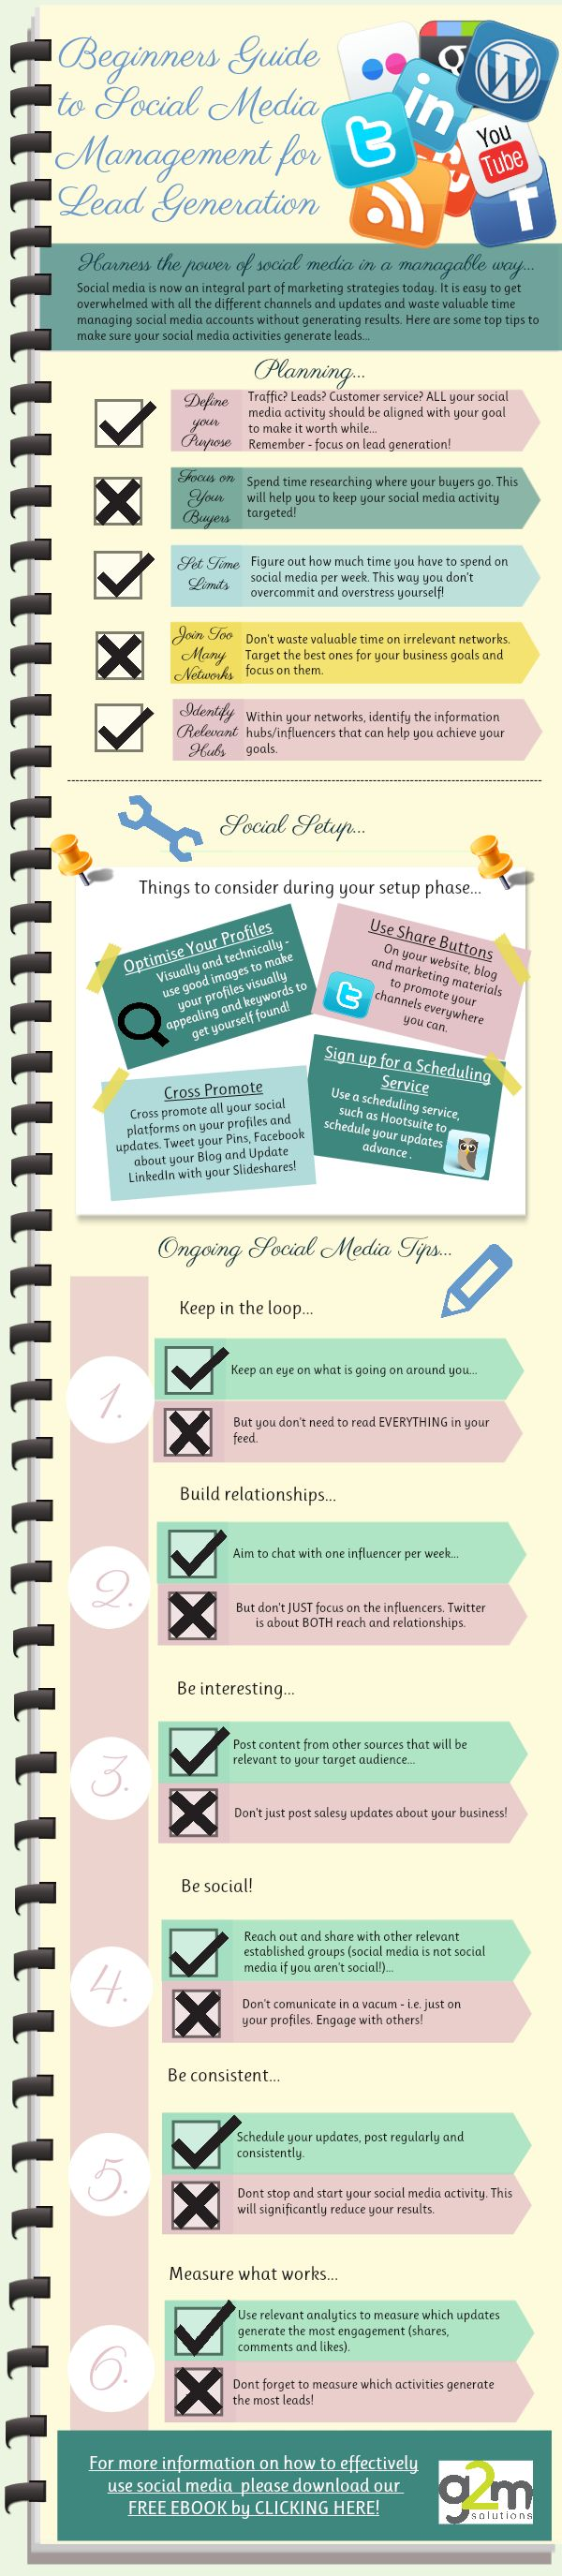 Social Media Marketing For B2B Lead Generation #Infographic @RadhaaNilia @ElenaSarmago @InsiderProduc